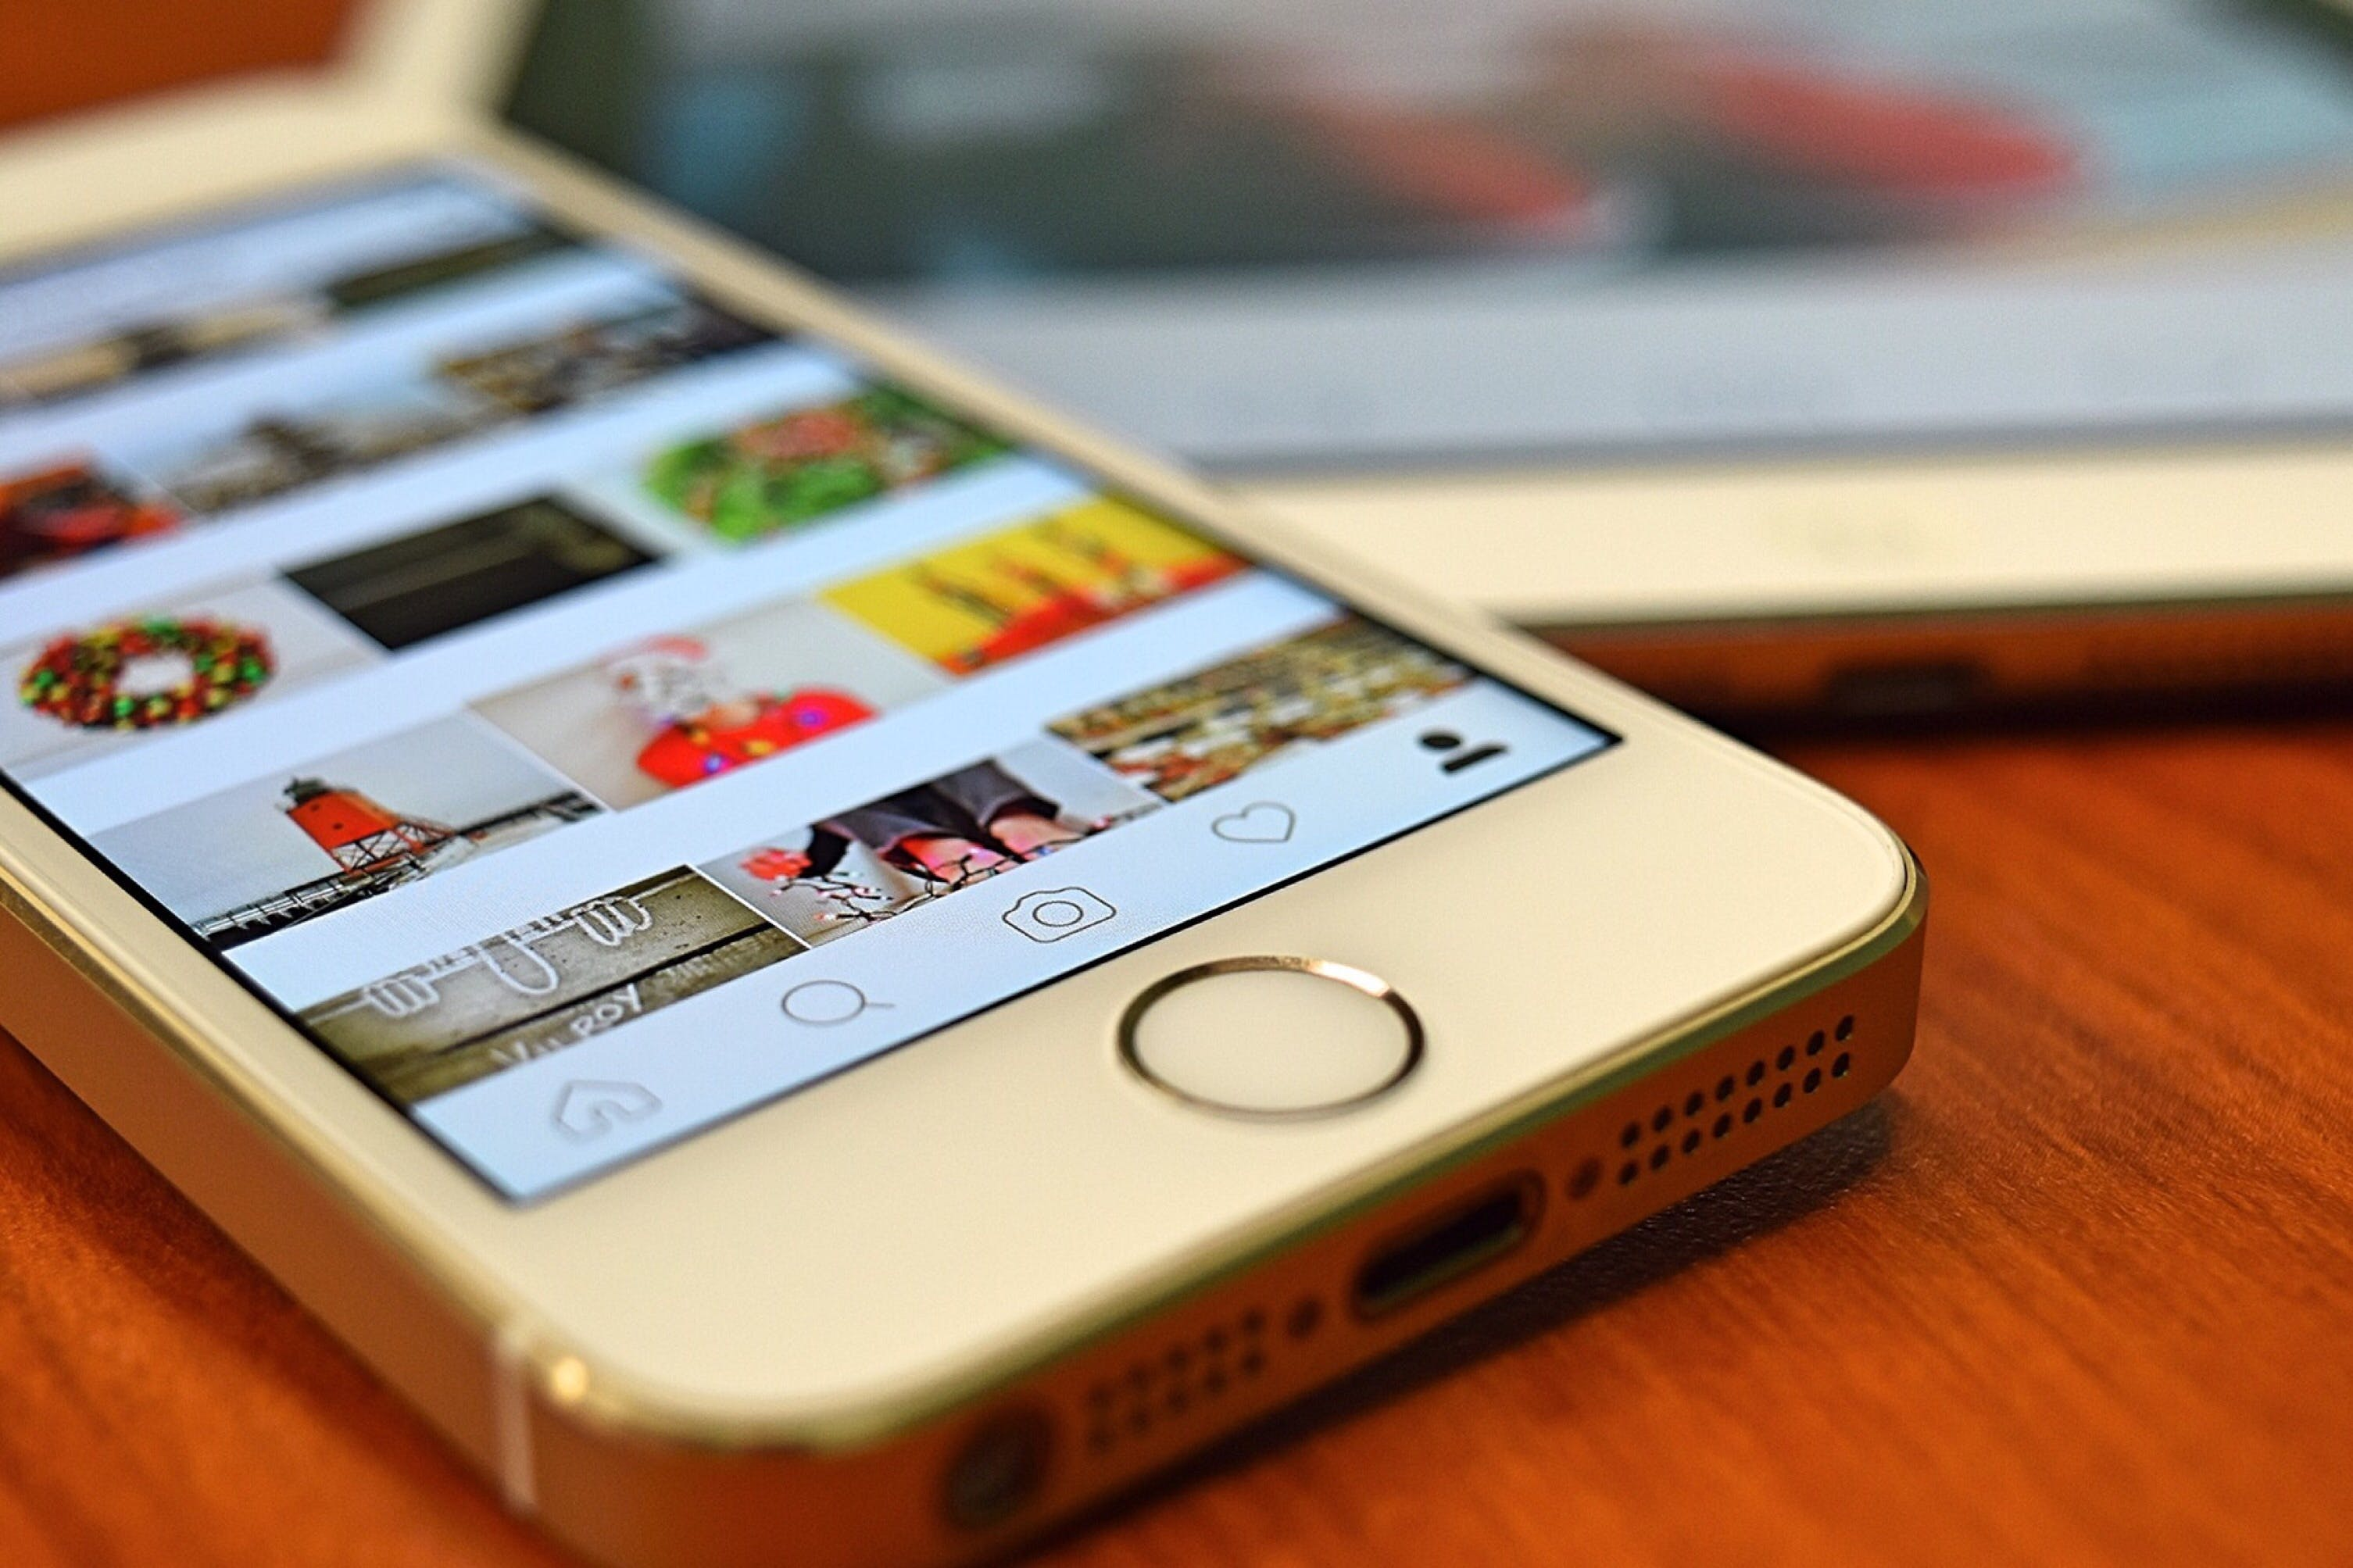 Silver Iphone 5s Showing Instagram